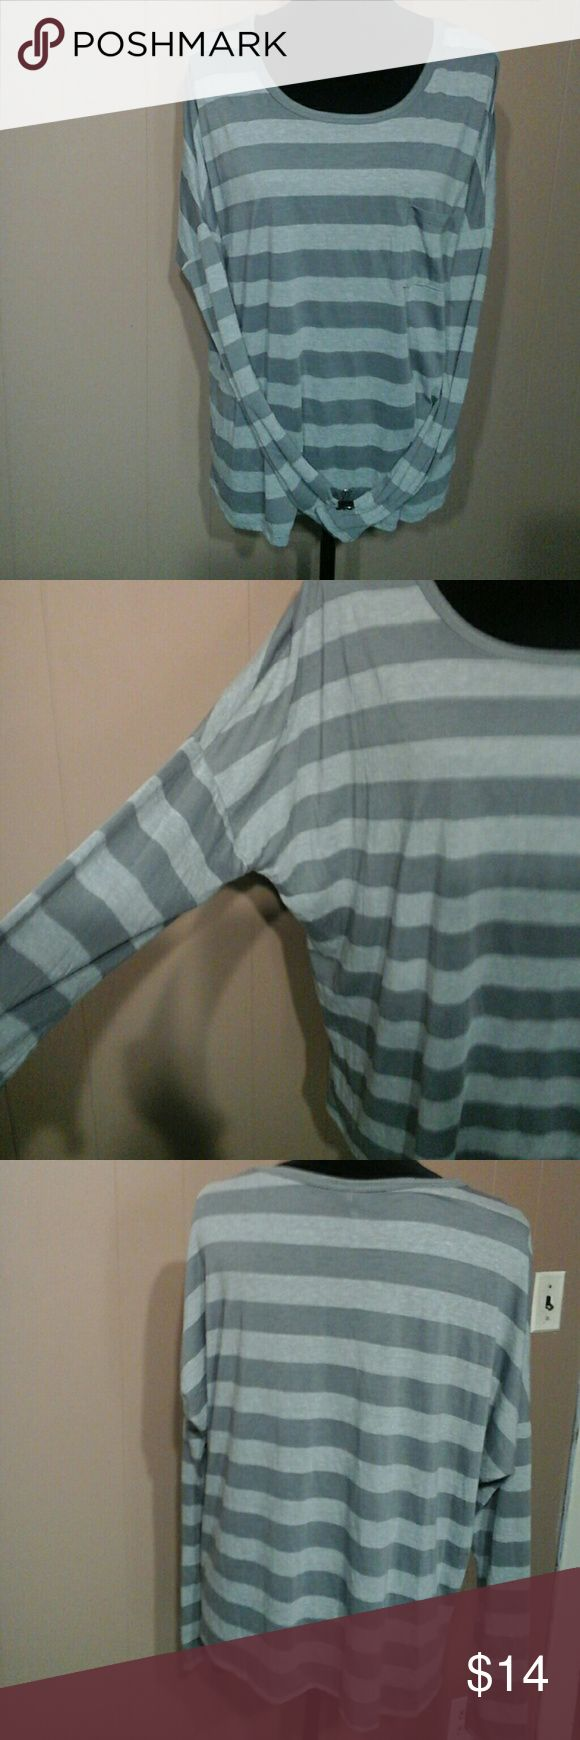 Shades of grey long sleeve top sz Lg Light weight flowing shirt, great with jeans TRESCIS Tops Tees - Long Sleeve